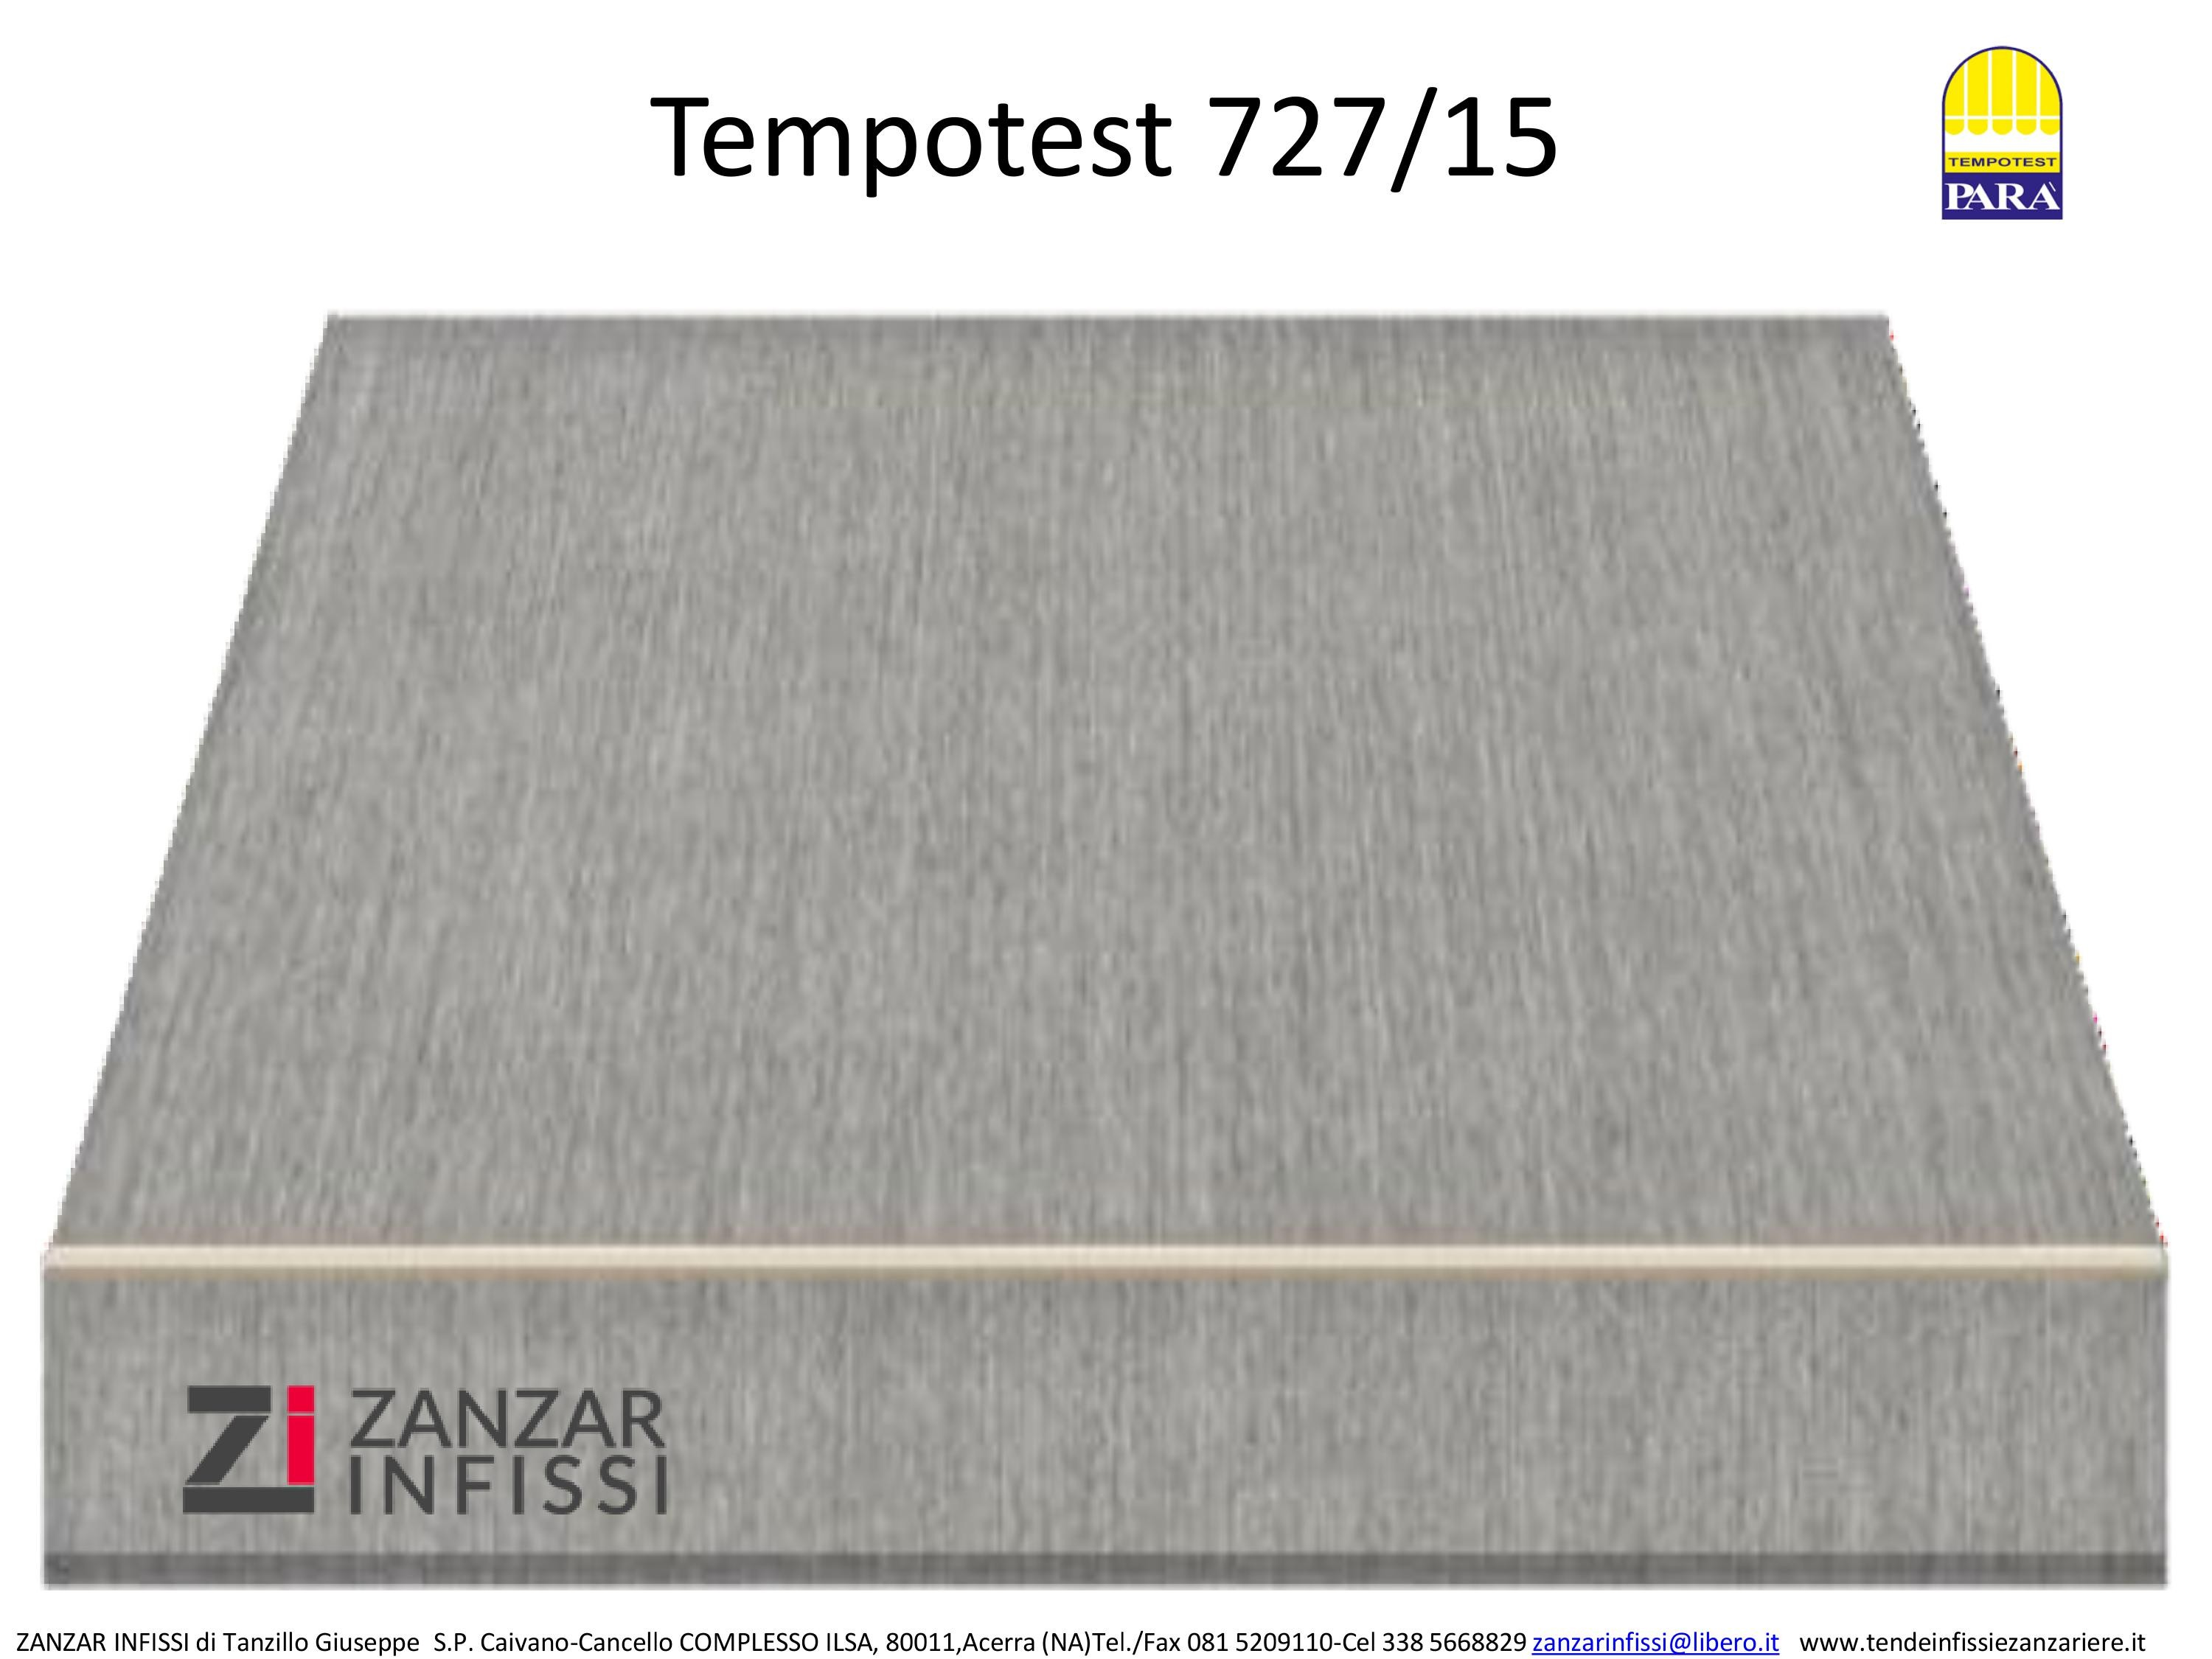 Tempotest 727/15